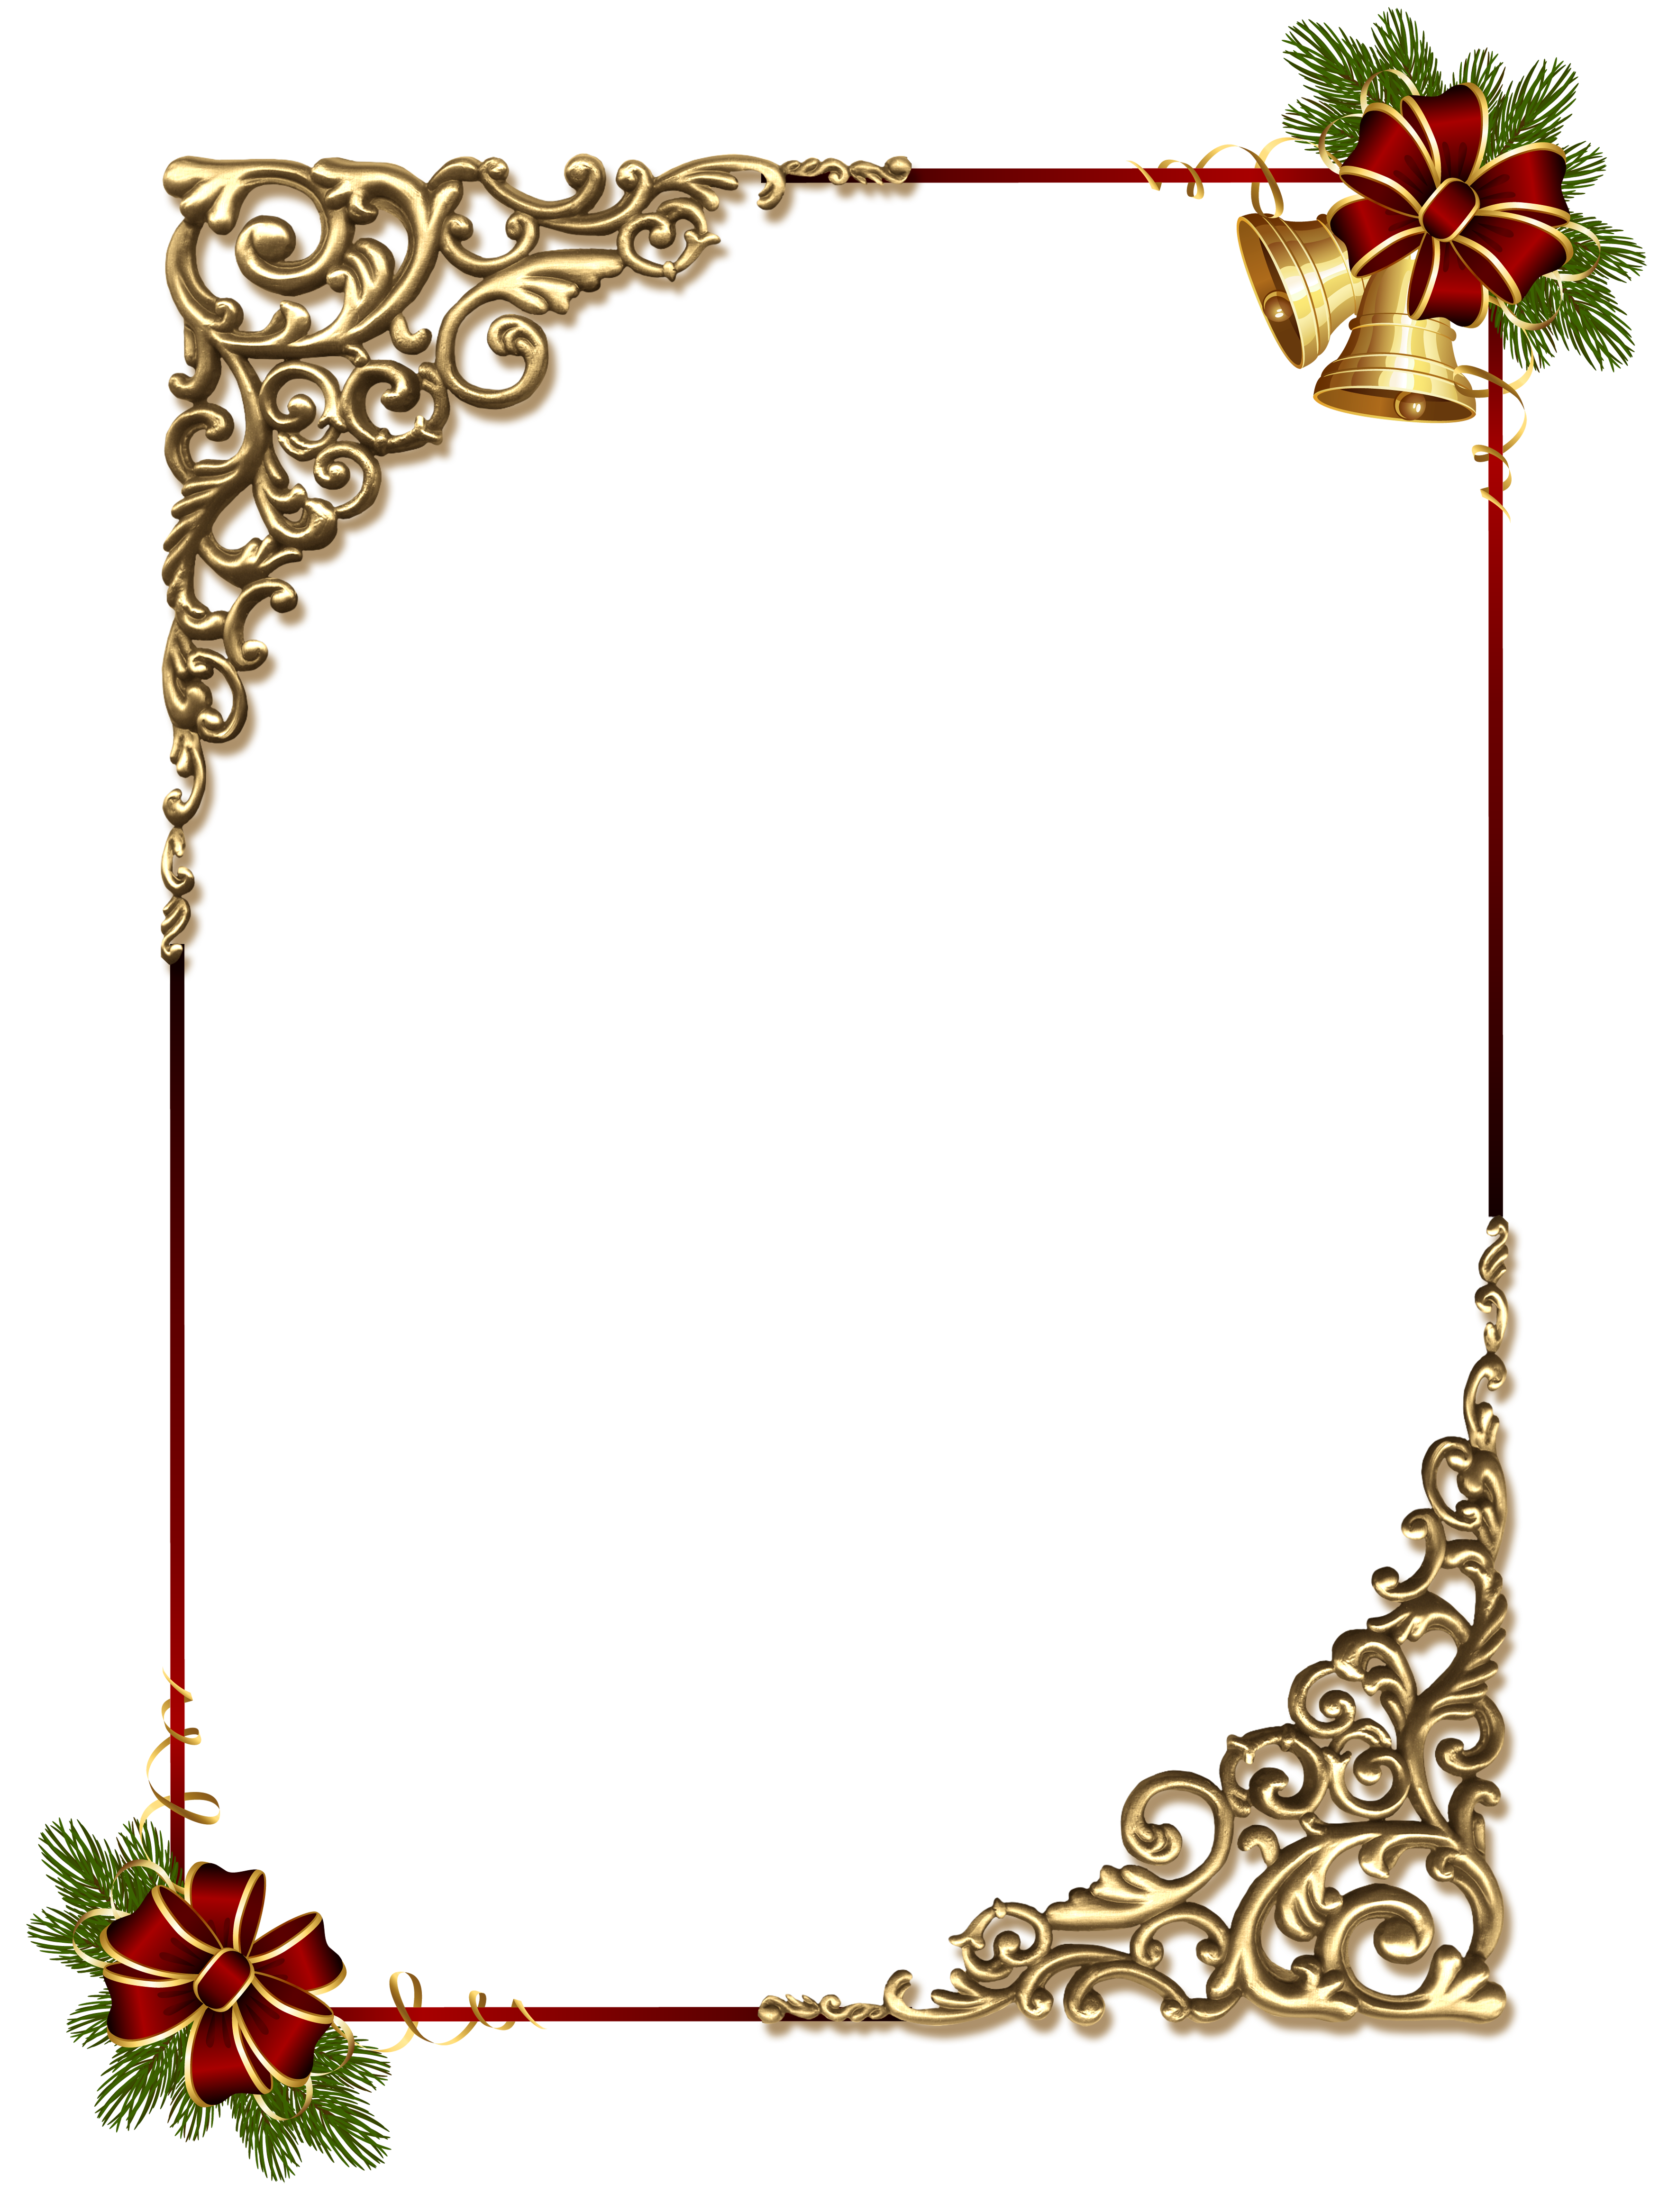 Christmas gold png photo. Holiday clipart picture frame